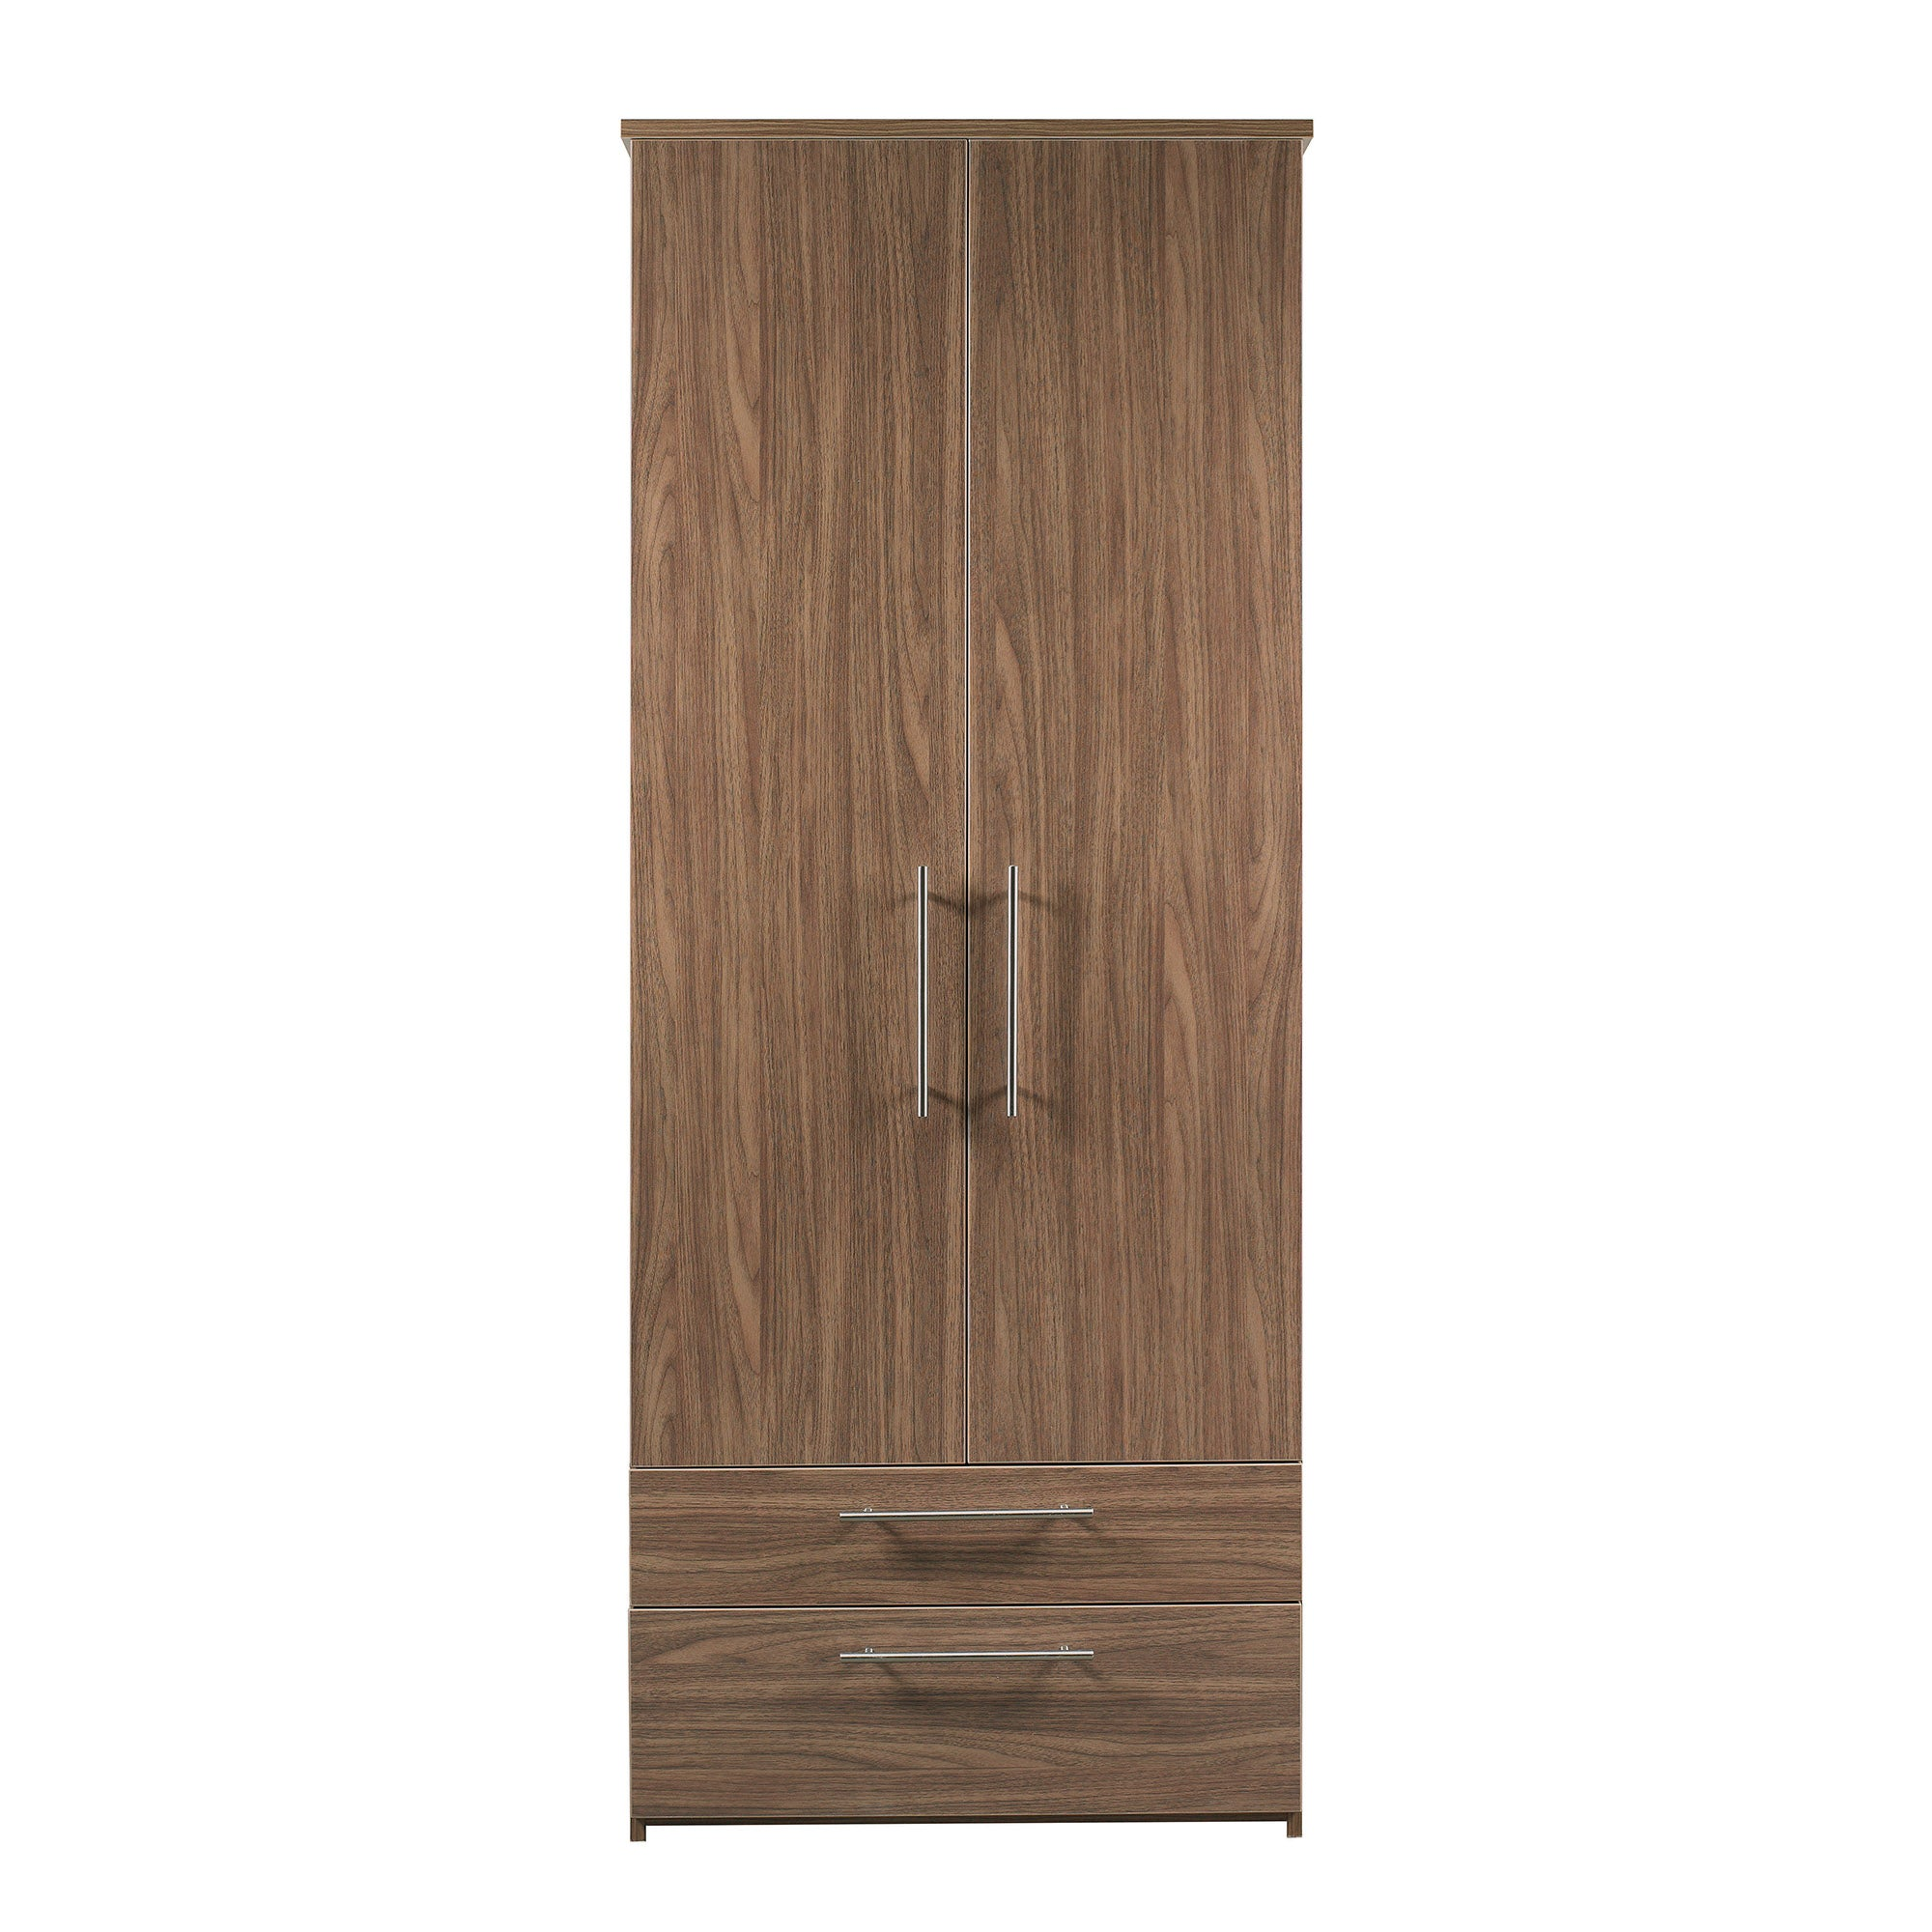 Brisbane Walnut Wardrobe with 2 Drawers